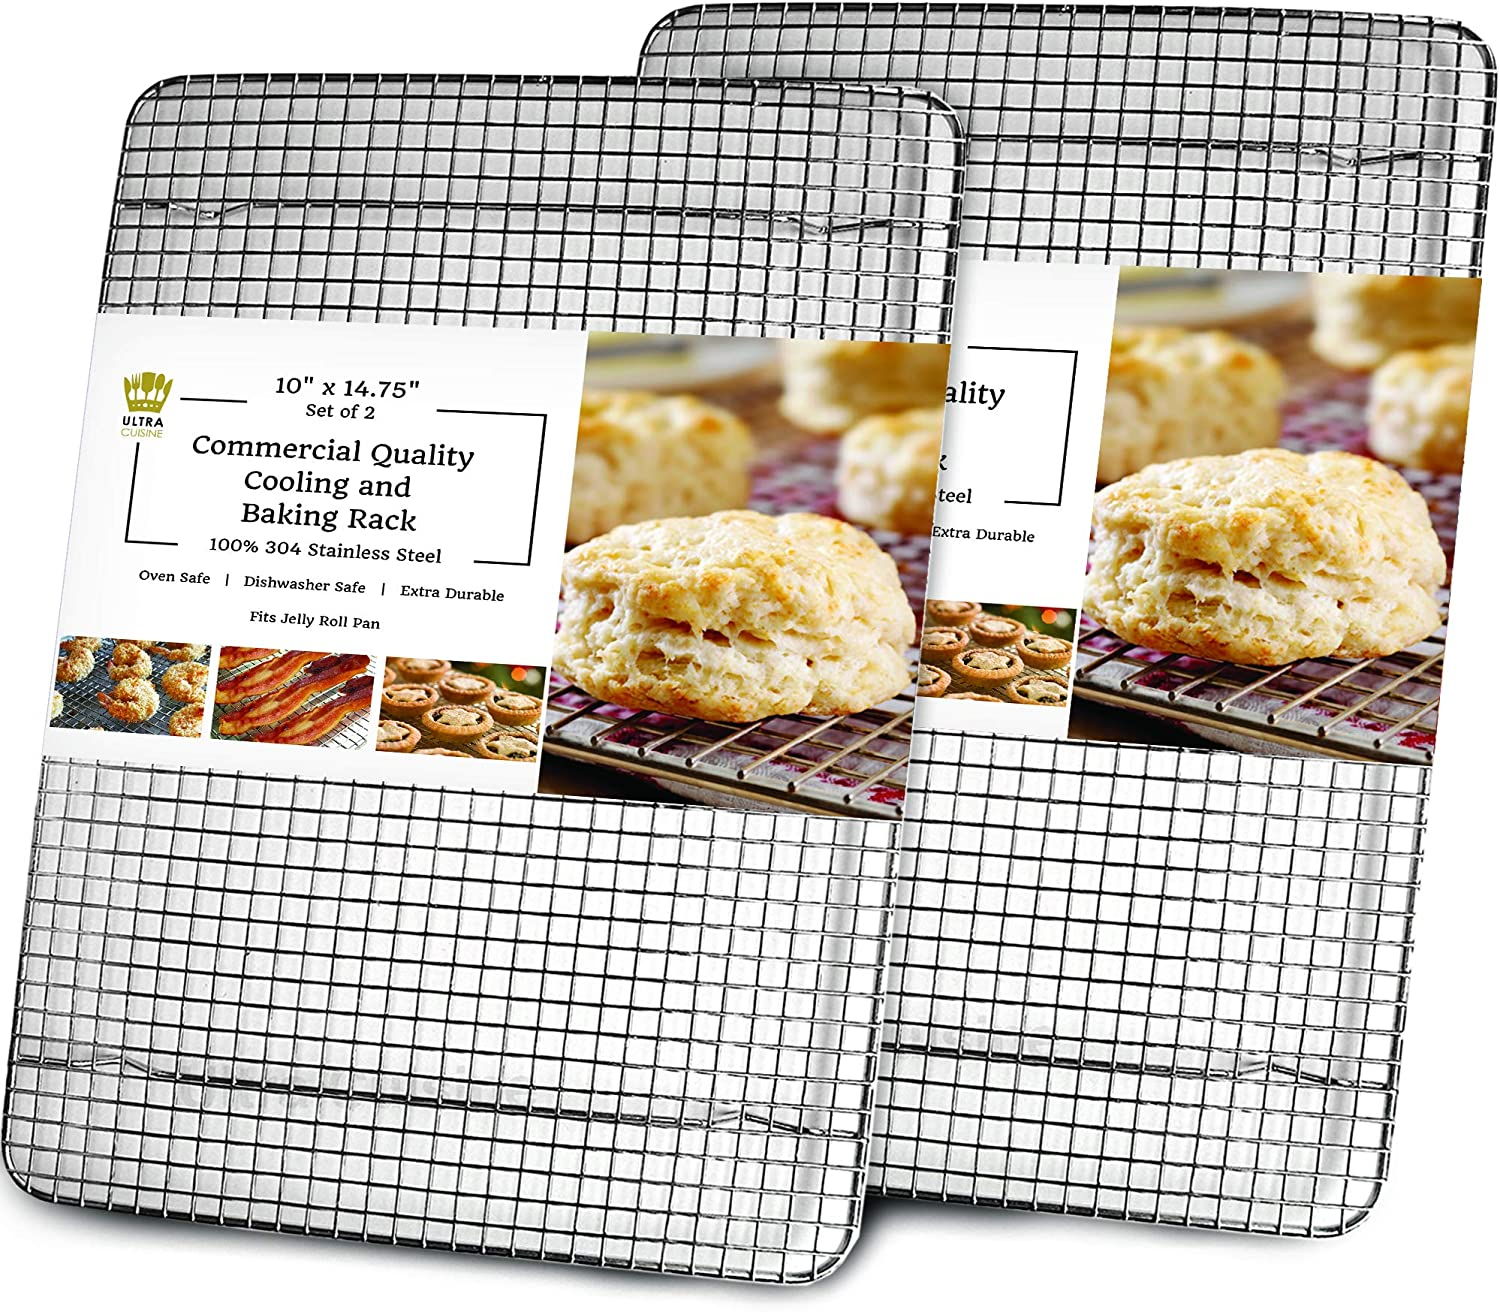 "Cooling, Baking & Roasting Wire Racks for Sheet Pans - 100% Stainless Steel Metal Racks for Cooking - Dishwasher Safe, Rust Resistant, Heavy Duty (10"" x 14.75"" - Set of 2)"